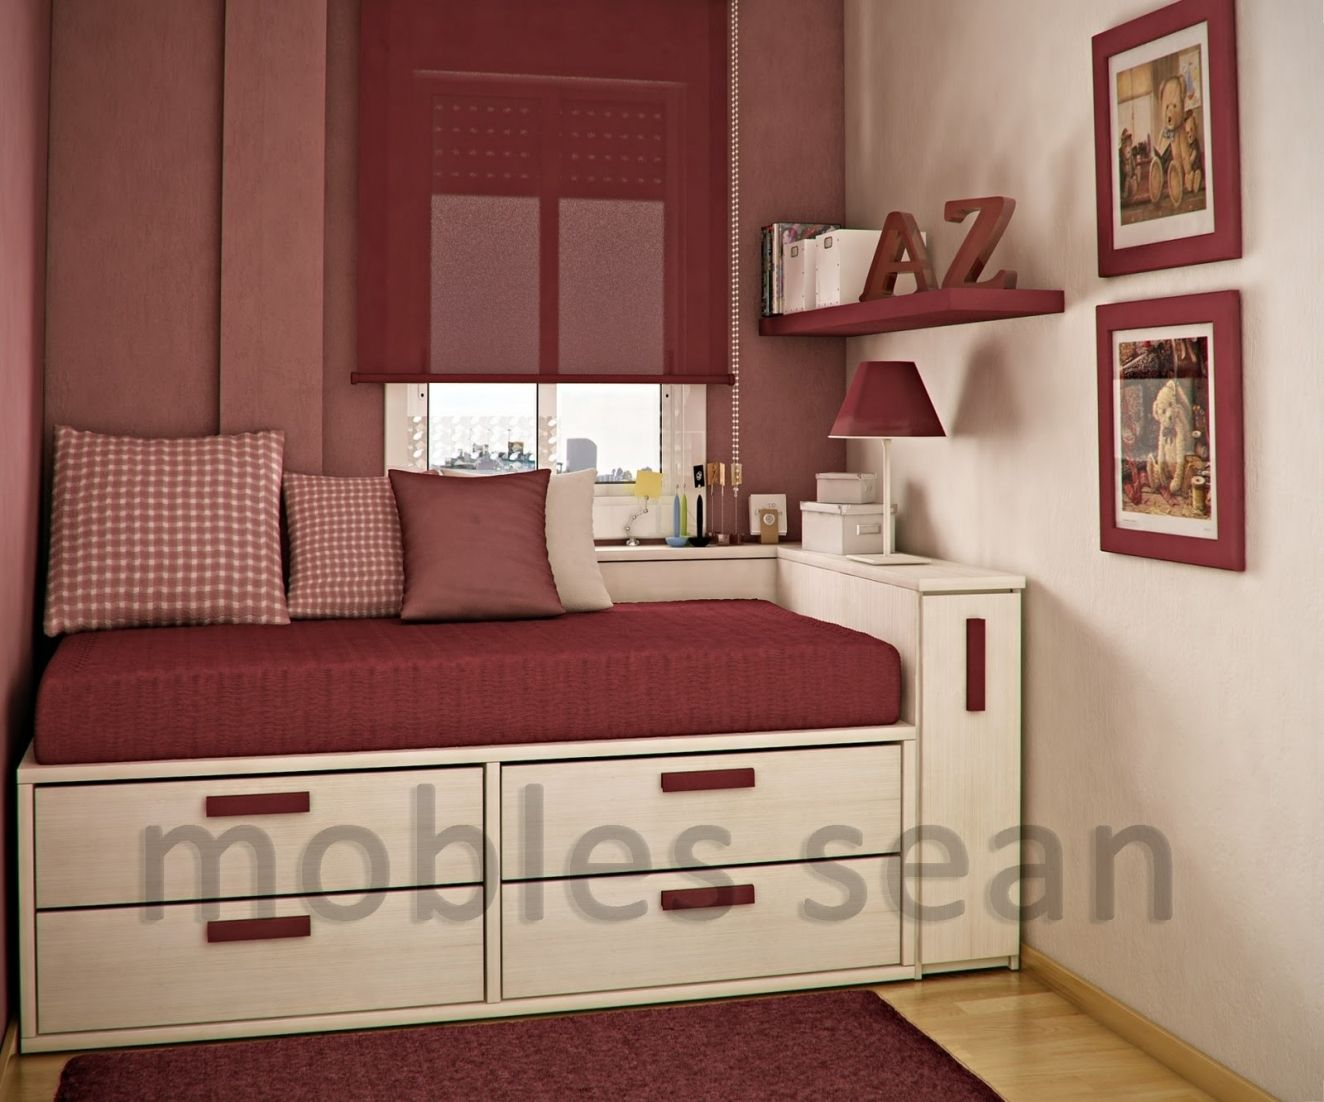 Bedroom Seating Ideas For Small Spaces   Master Bedroom Interior Design  Check More At ...